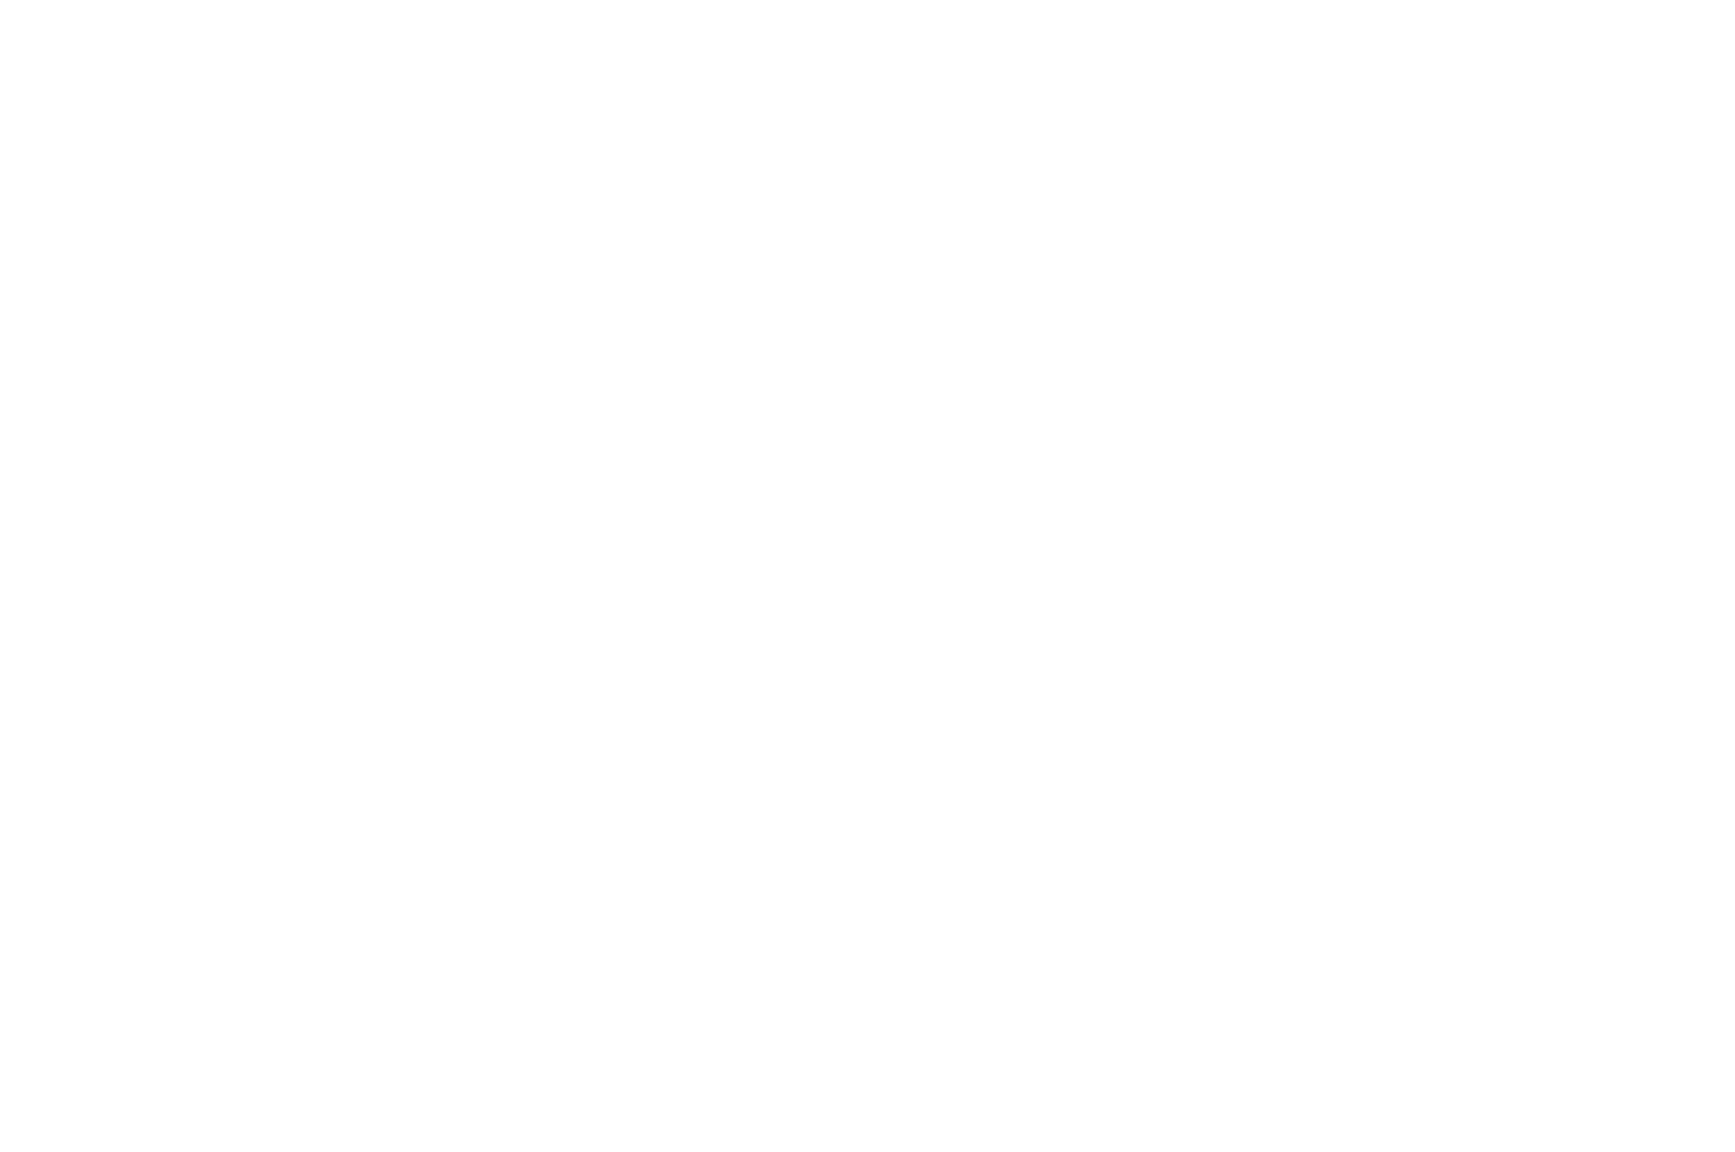 OFFICIAL SELECTION - PIFFF Paris International Fantastic Film Festival - 2018 Black.png